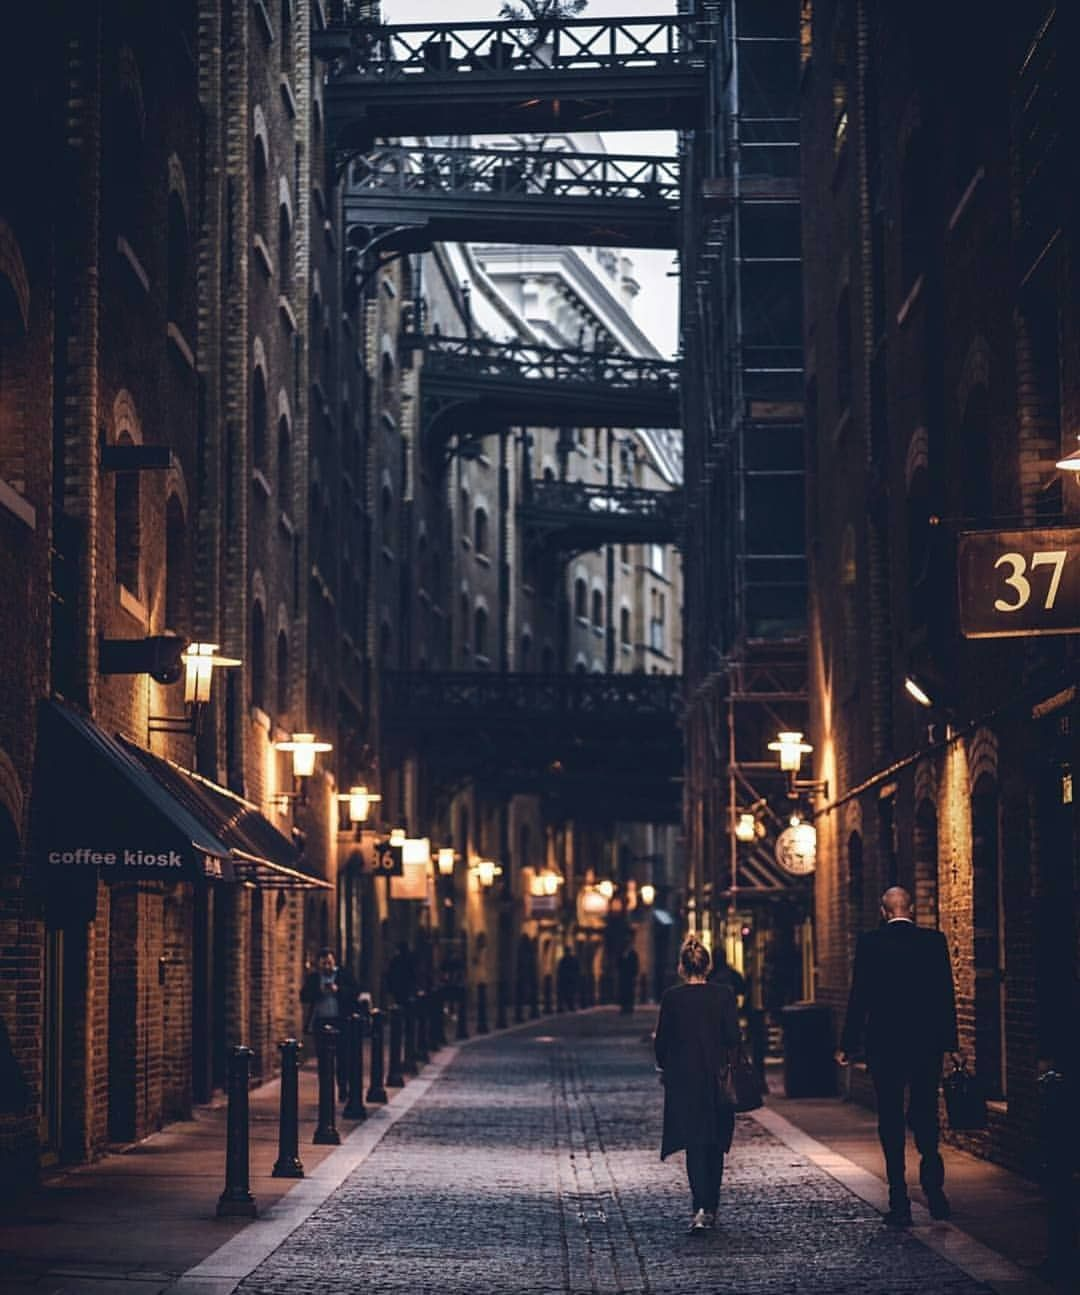 A Wonderful Moody Picture Of Shad Thames Do You Like It Pictur City Aesthetic Urban Photography City Photography